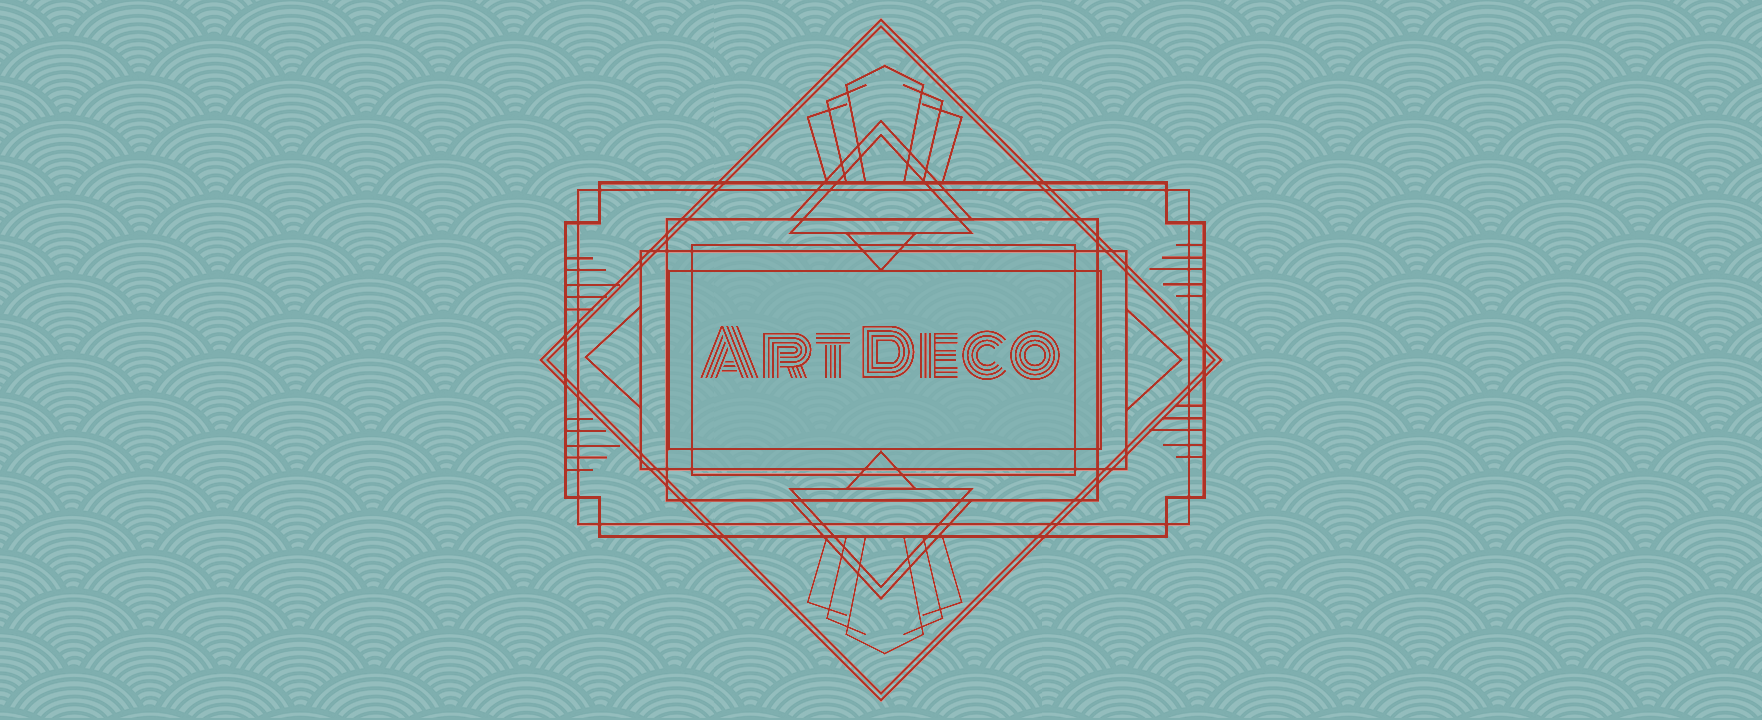 Create an art deco inspired vector logo in gravit designer